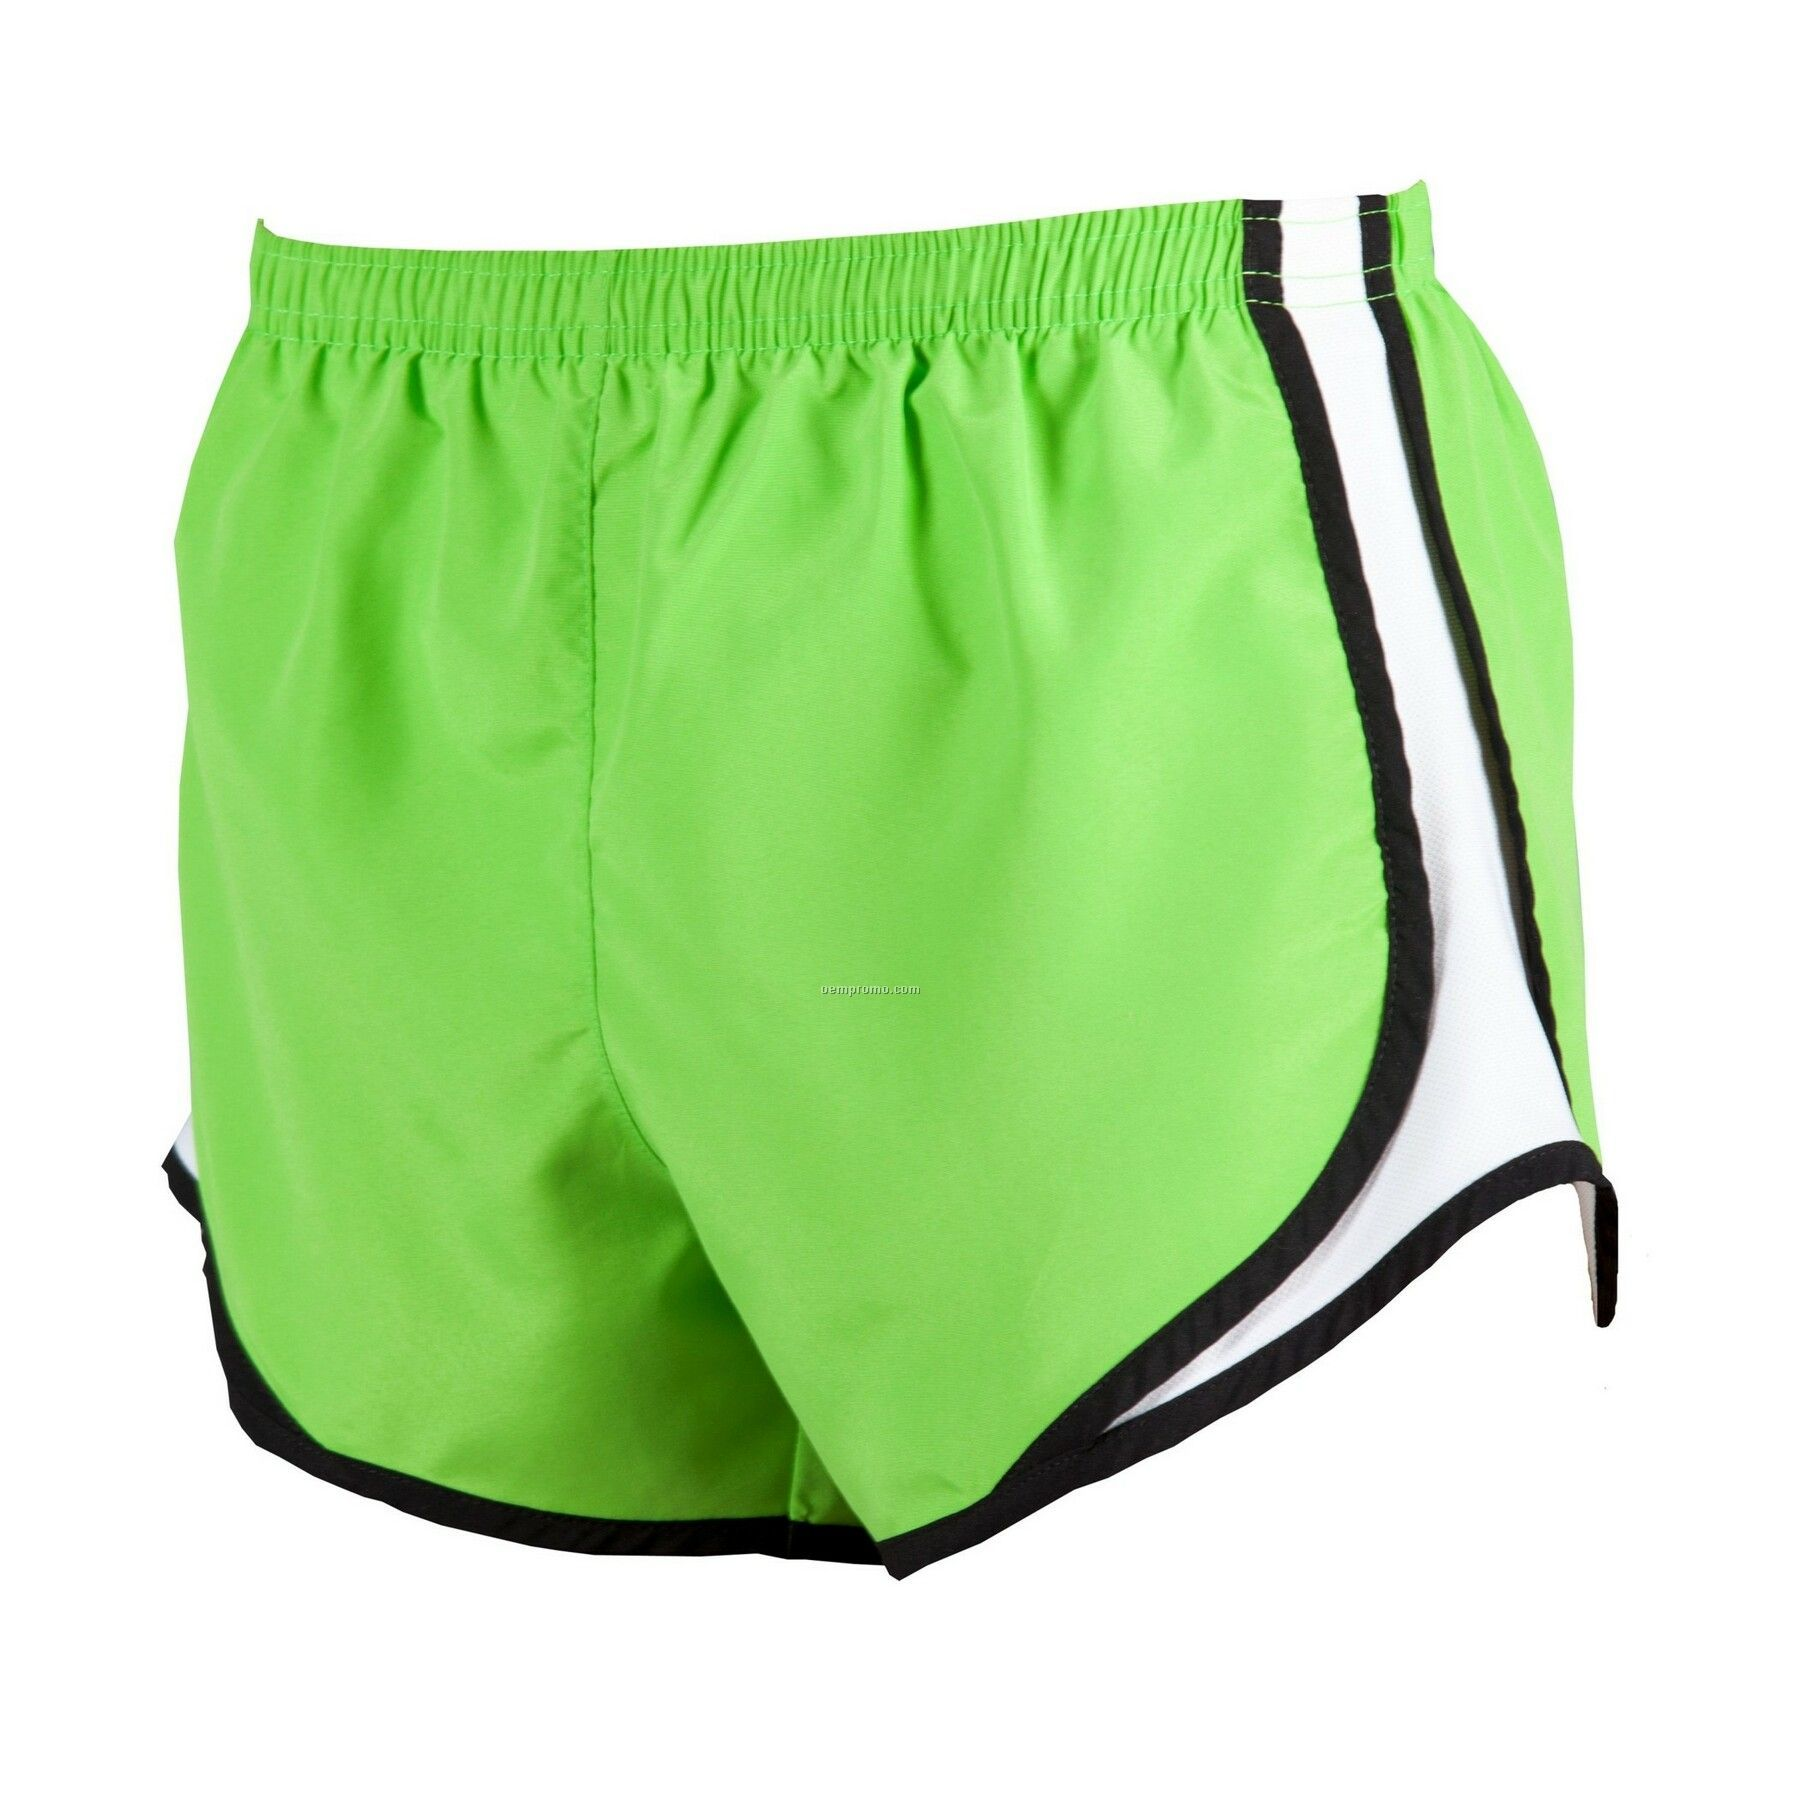 Shop for Running Shorts at REI - FREE SHIPPING With $50 minimum purchase. Top quality, great selection and expert advice you can trust. % Satisfaction Guarantee.